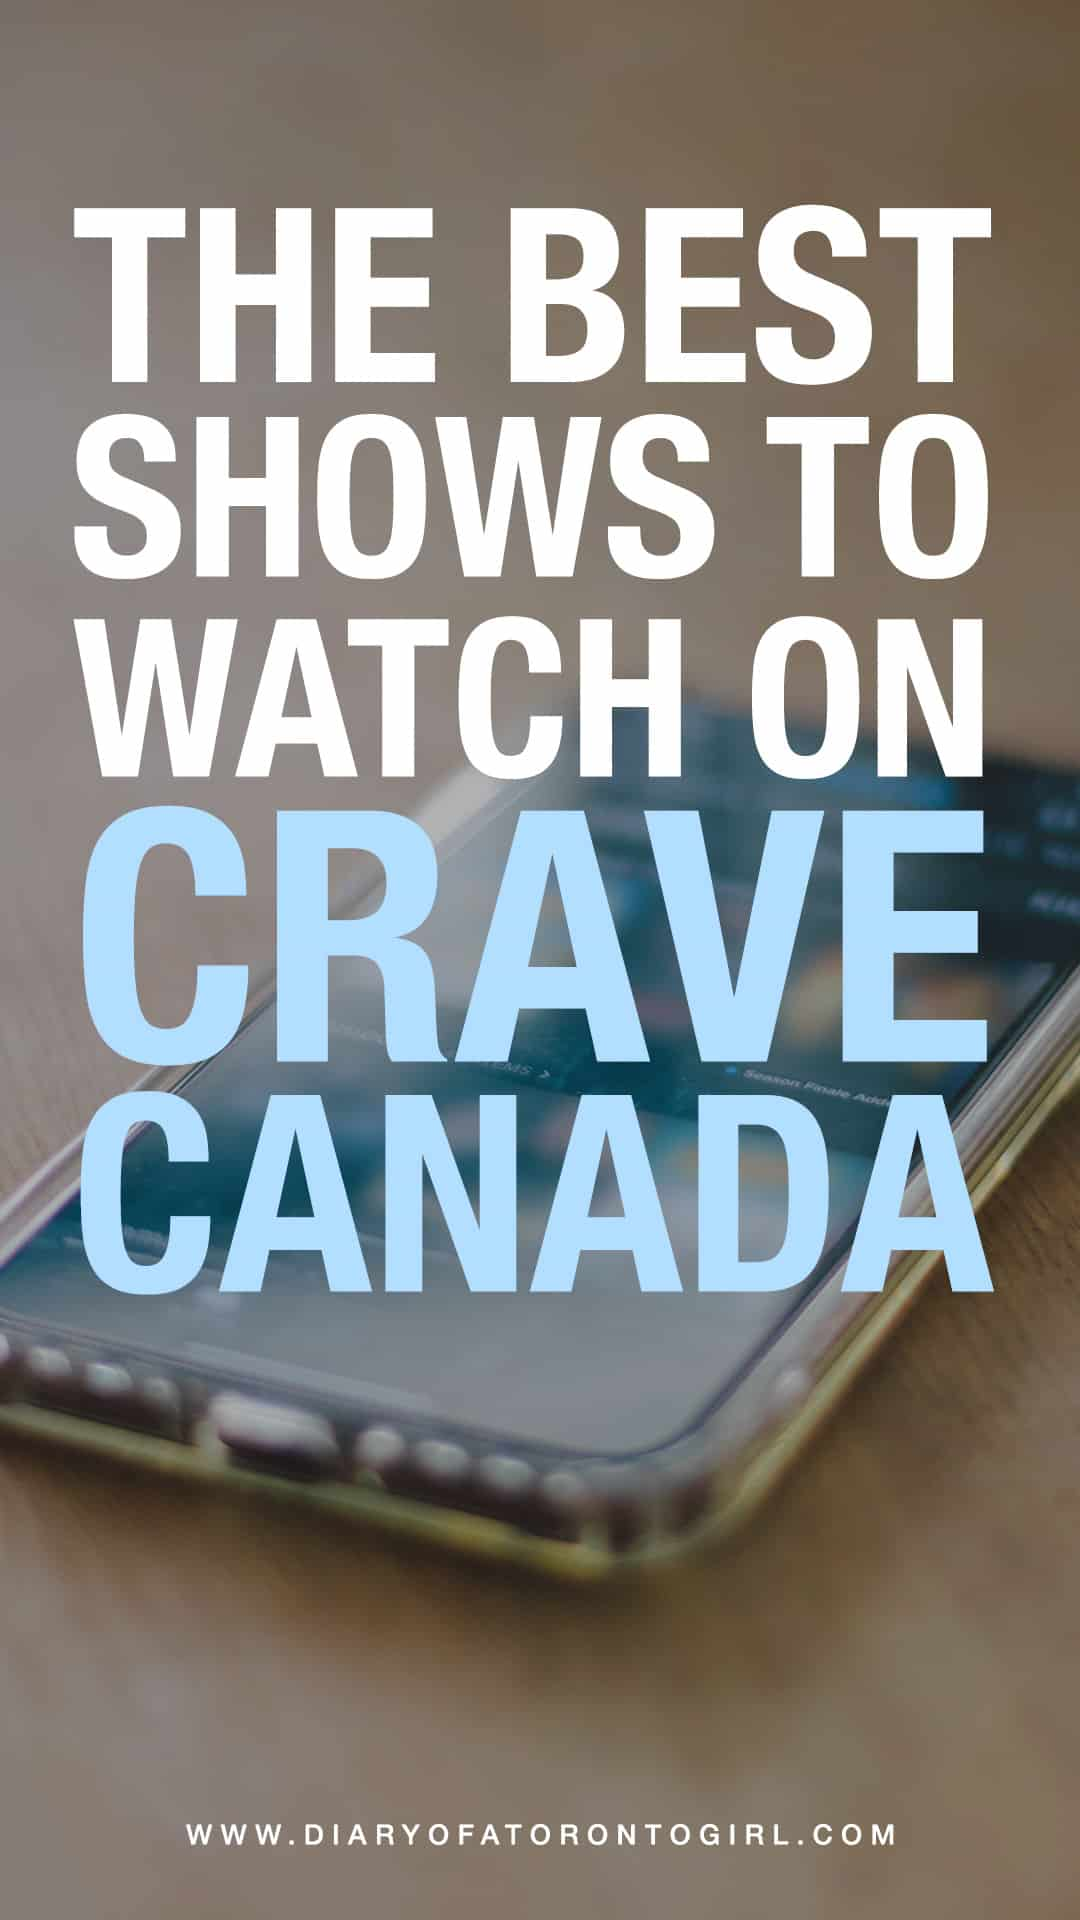 Looking for something new to binge-watch? Here are some of the best television series and shows to watch on Crave TV Canada!